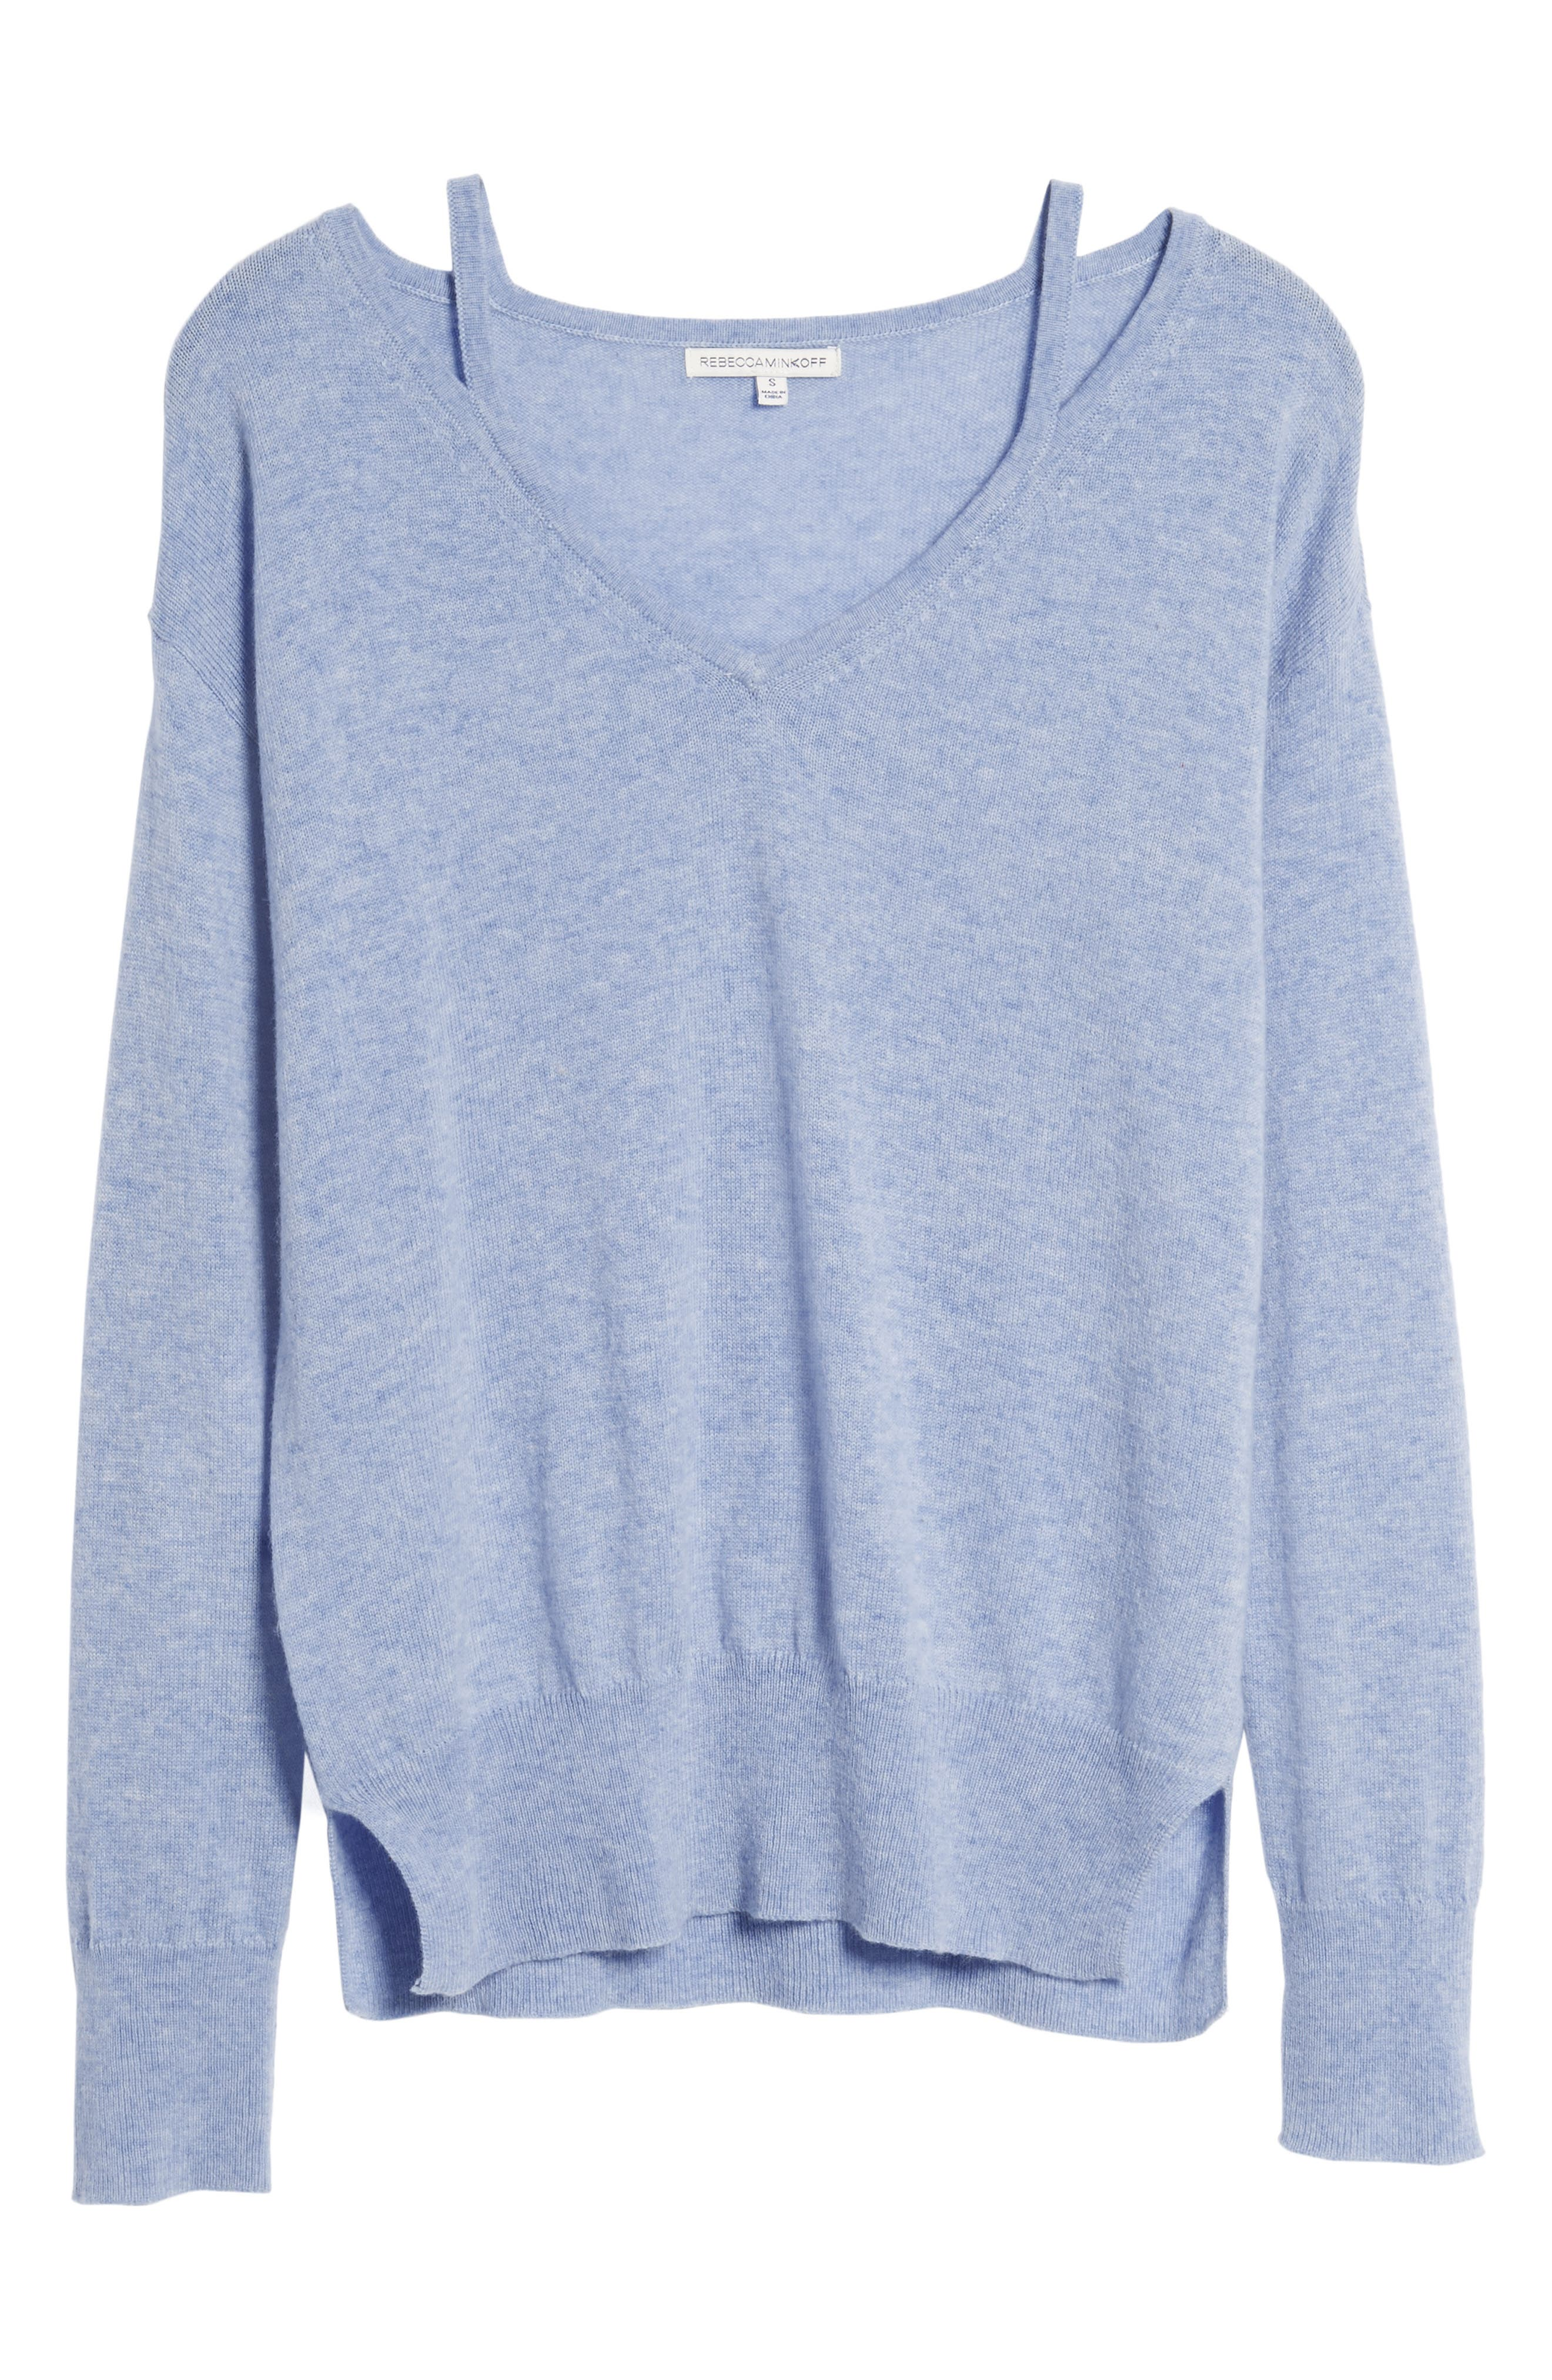 Kenley Wool & Cashmere Sweater,                             Alternate thumbnail 6, color,                             400